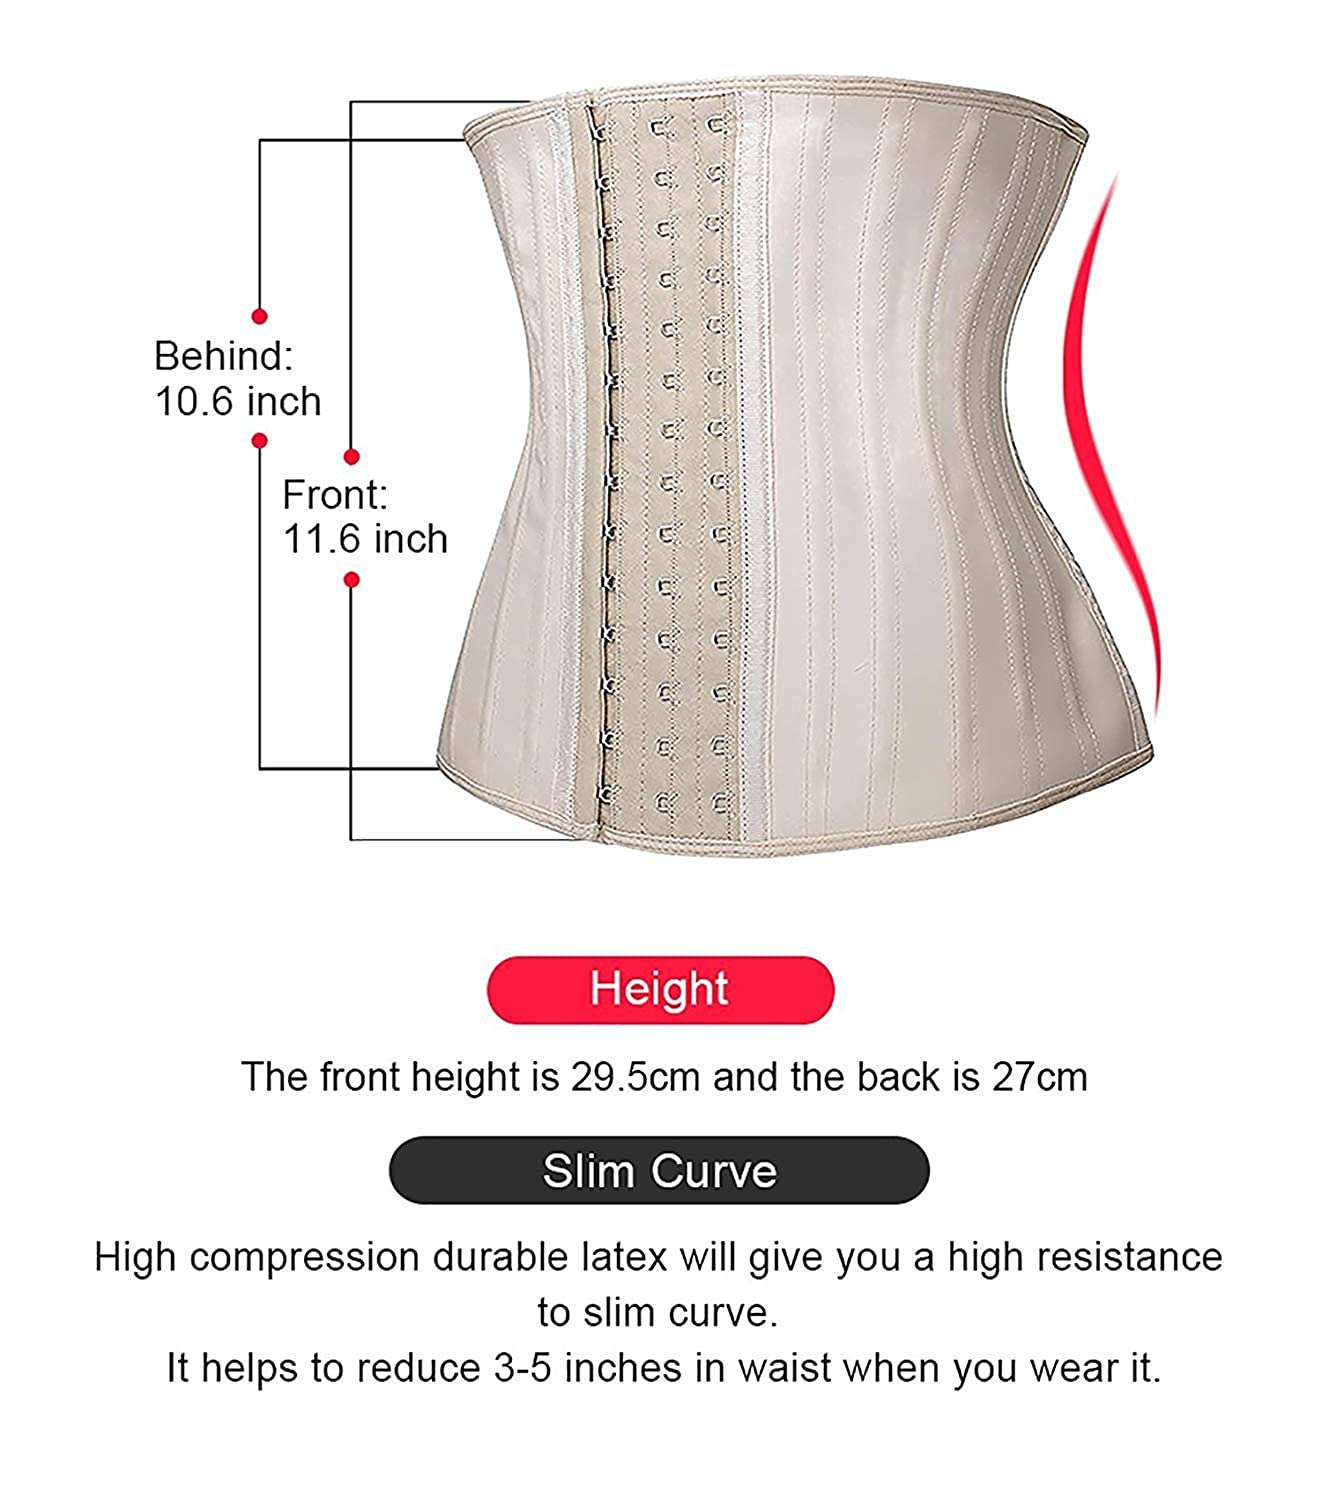 a3160c023 SHAPERX Women s Latex Waist Trainer Corsets Cincher Weight Loss Hourglass  Shaper Sports Girdle at Amazon Women s Clothing store